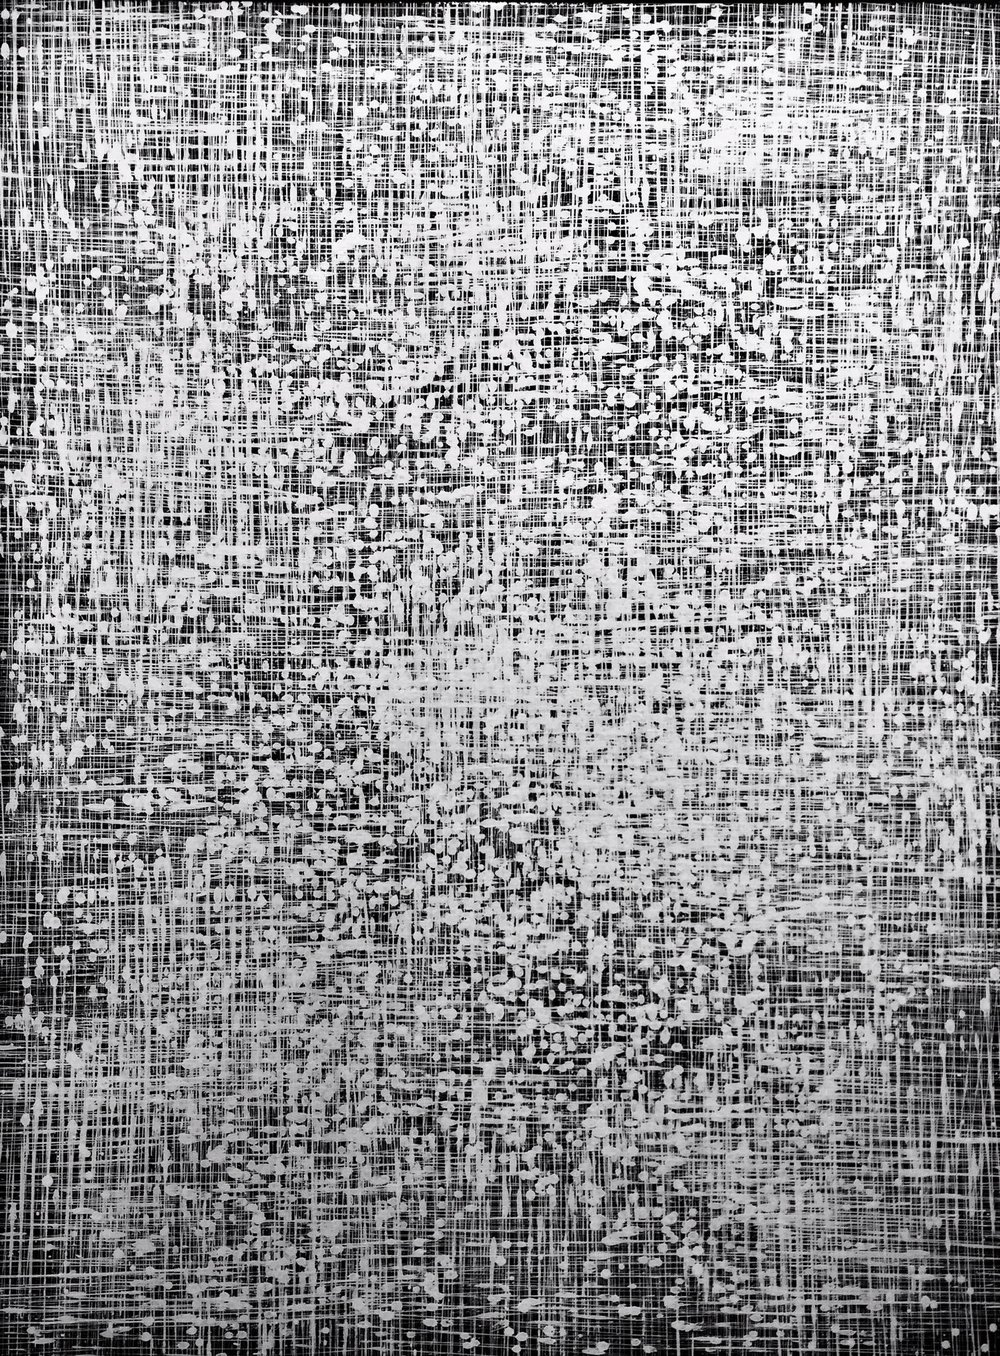 Above: Wilson Lin, A Glimmering Sheet, Synthetic Polymer Paint on Linen, 122 x 91.5cm, P.O.A